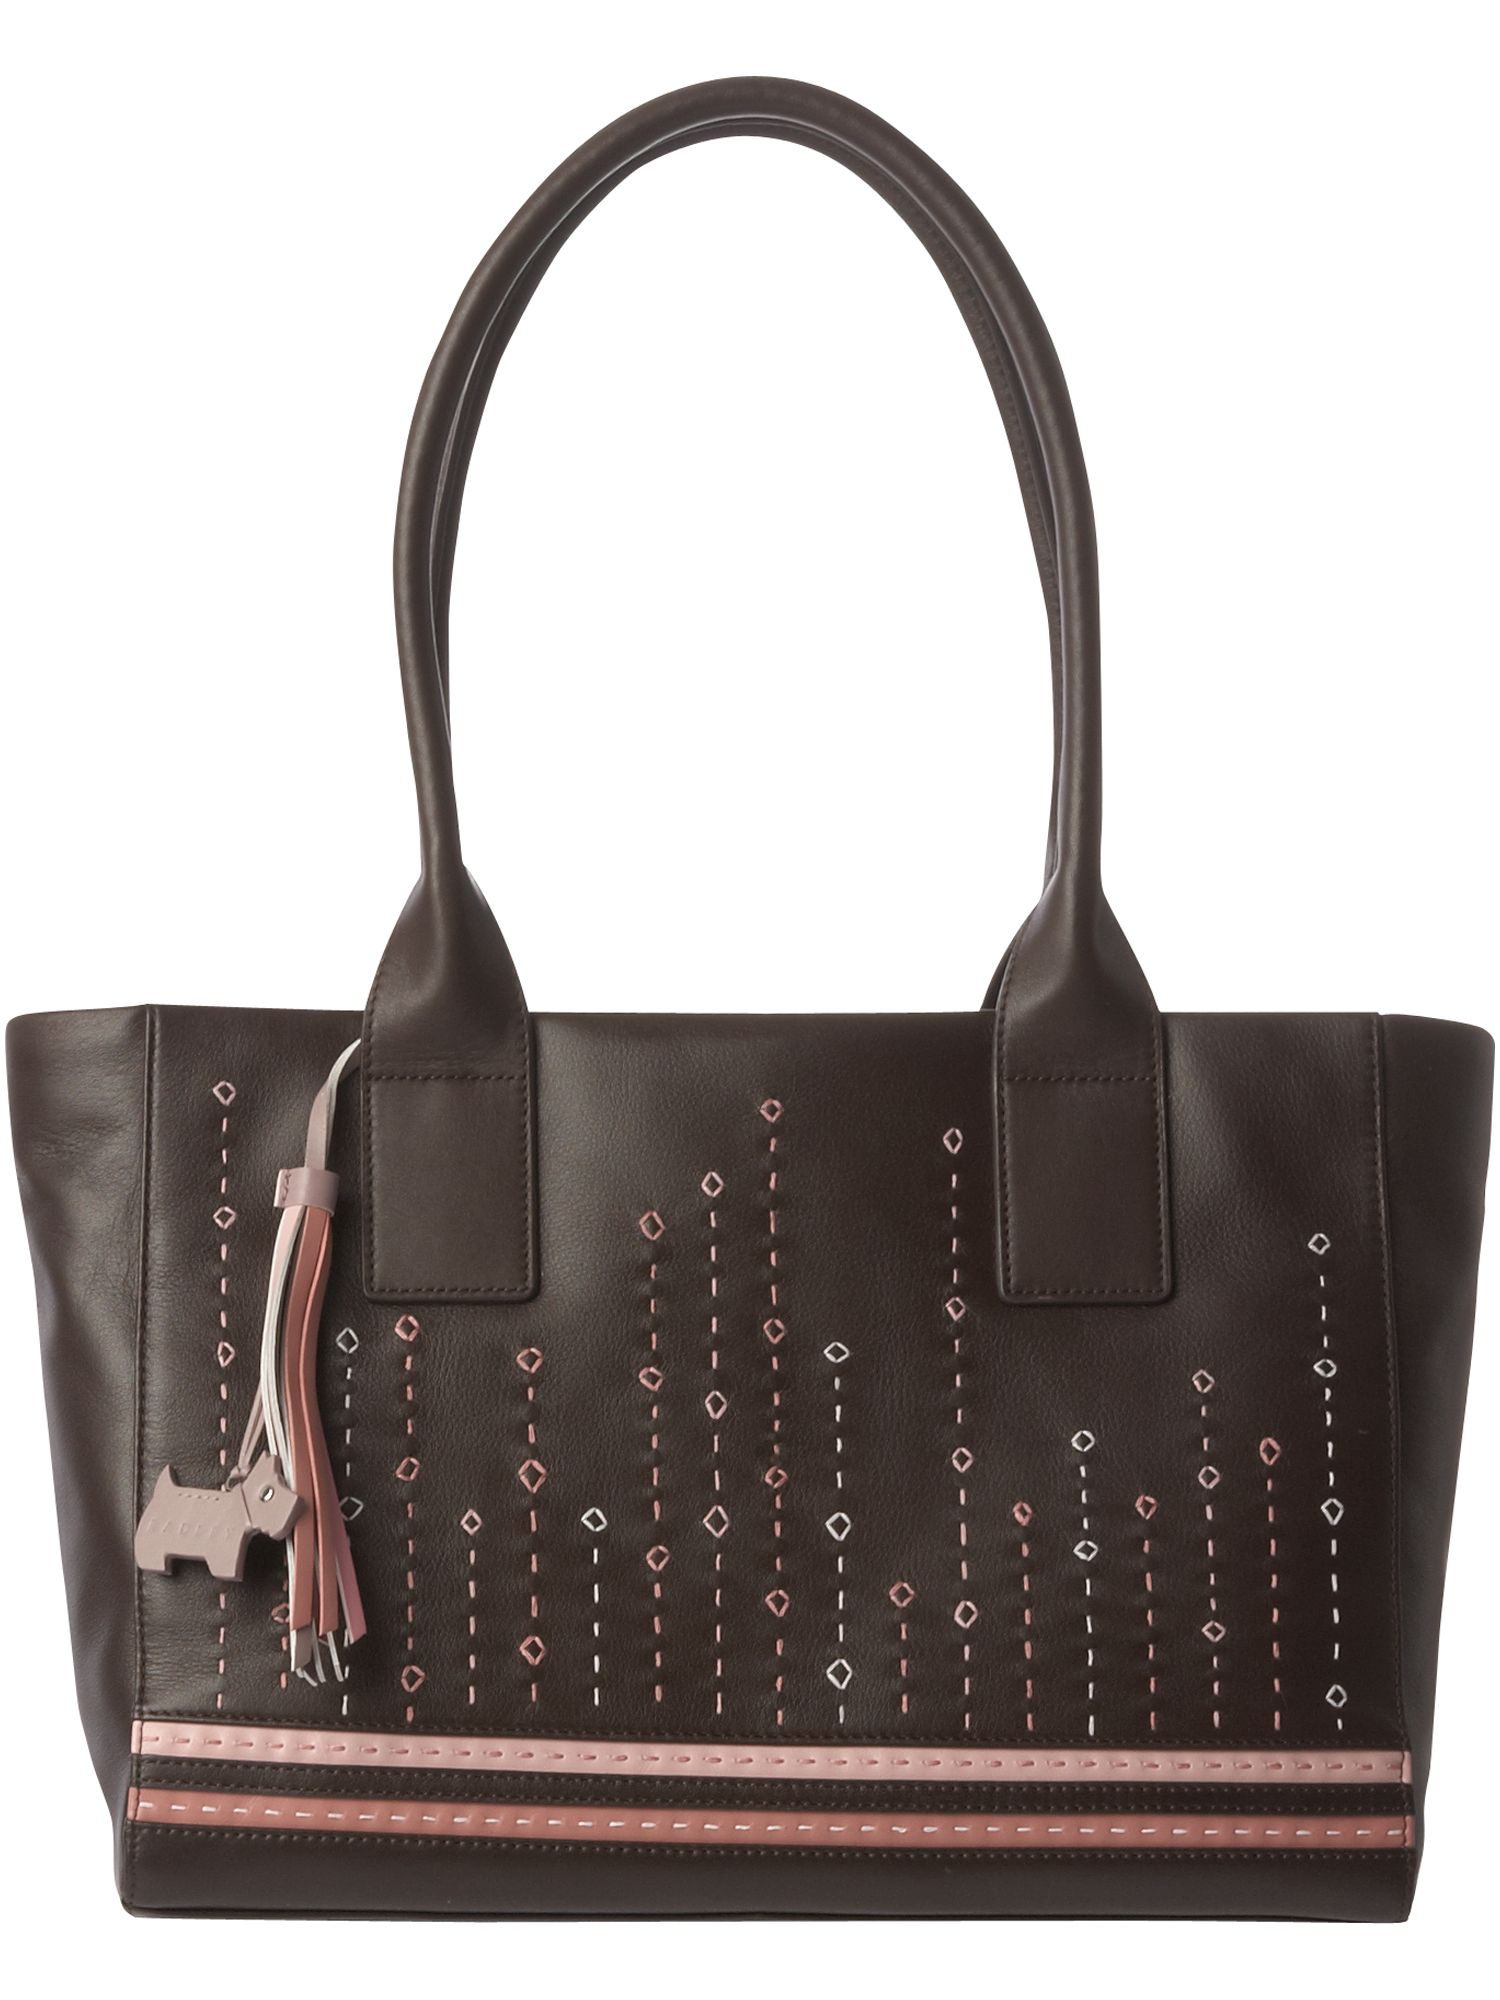 Pimlico large leather shoulder tote bag.